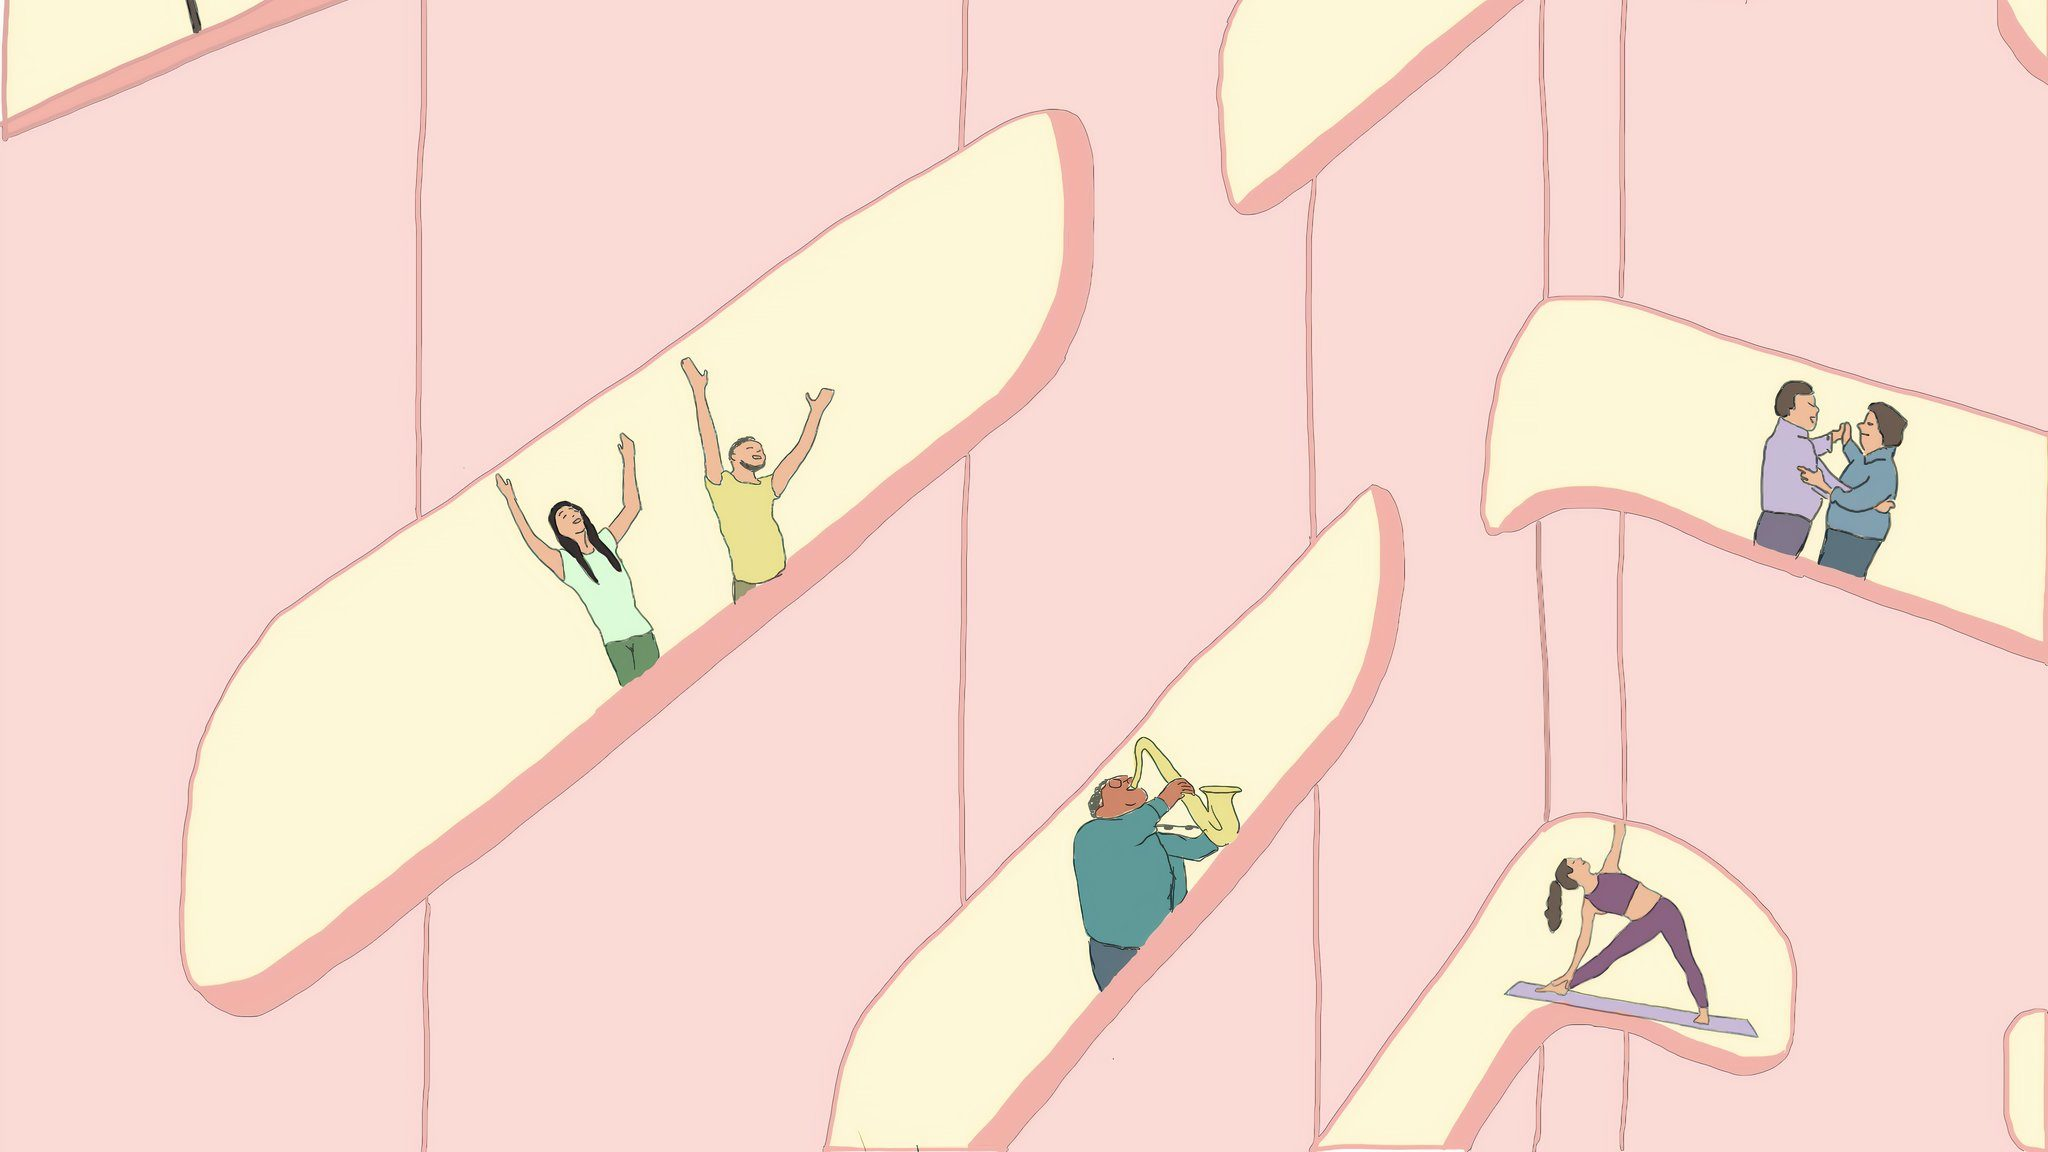 A stylized graphic of people facing toward windows and engaging in a variety of activities like playing an instrument, doing yoga, and window-watching.